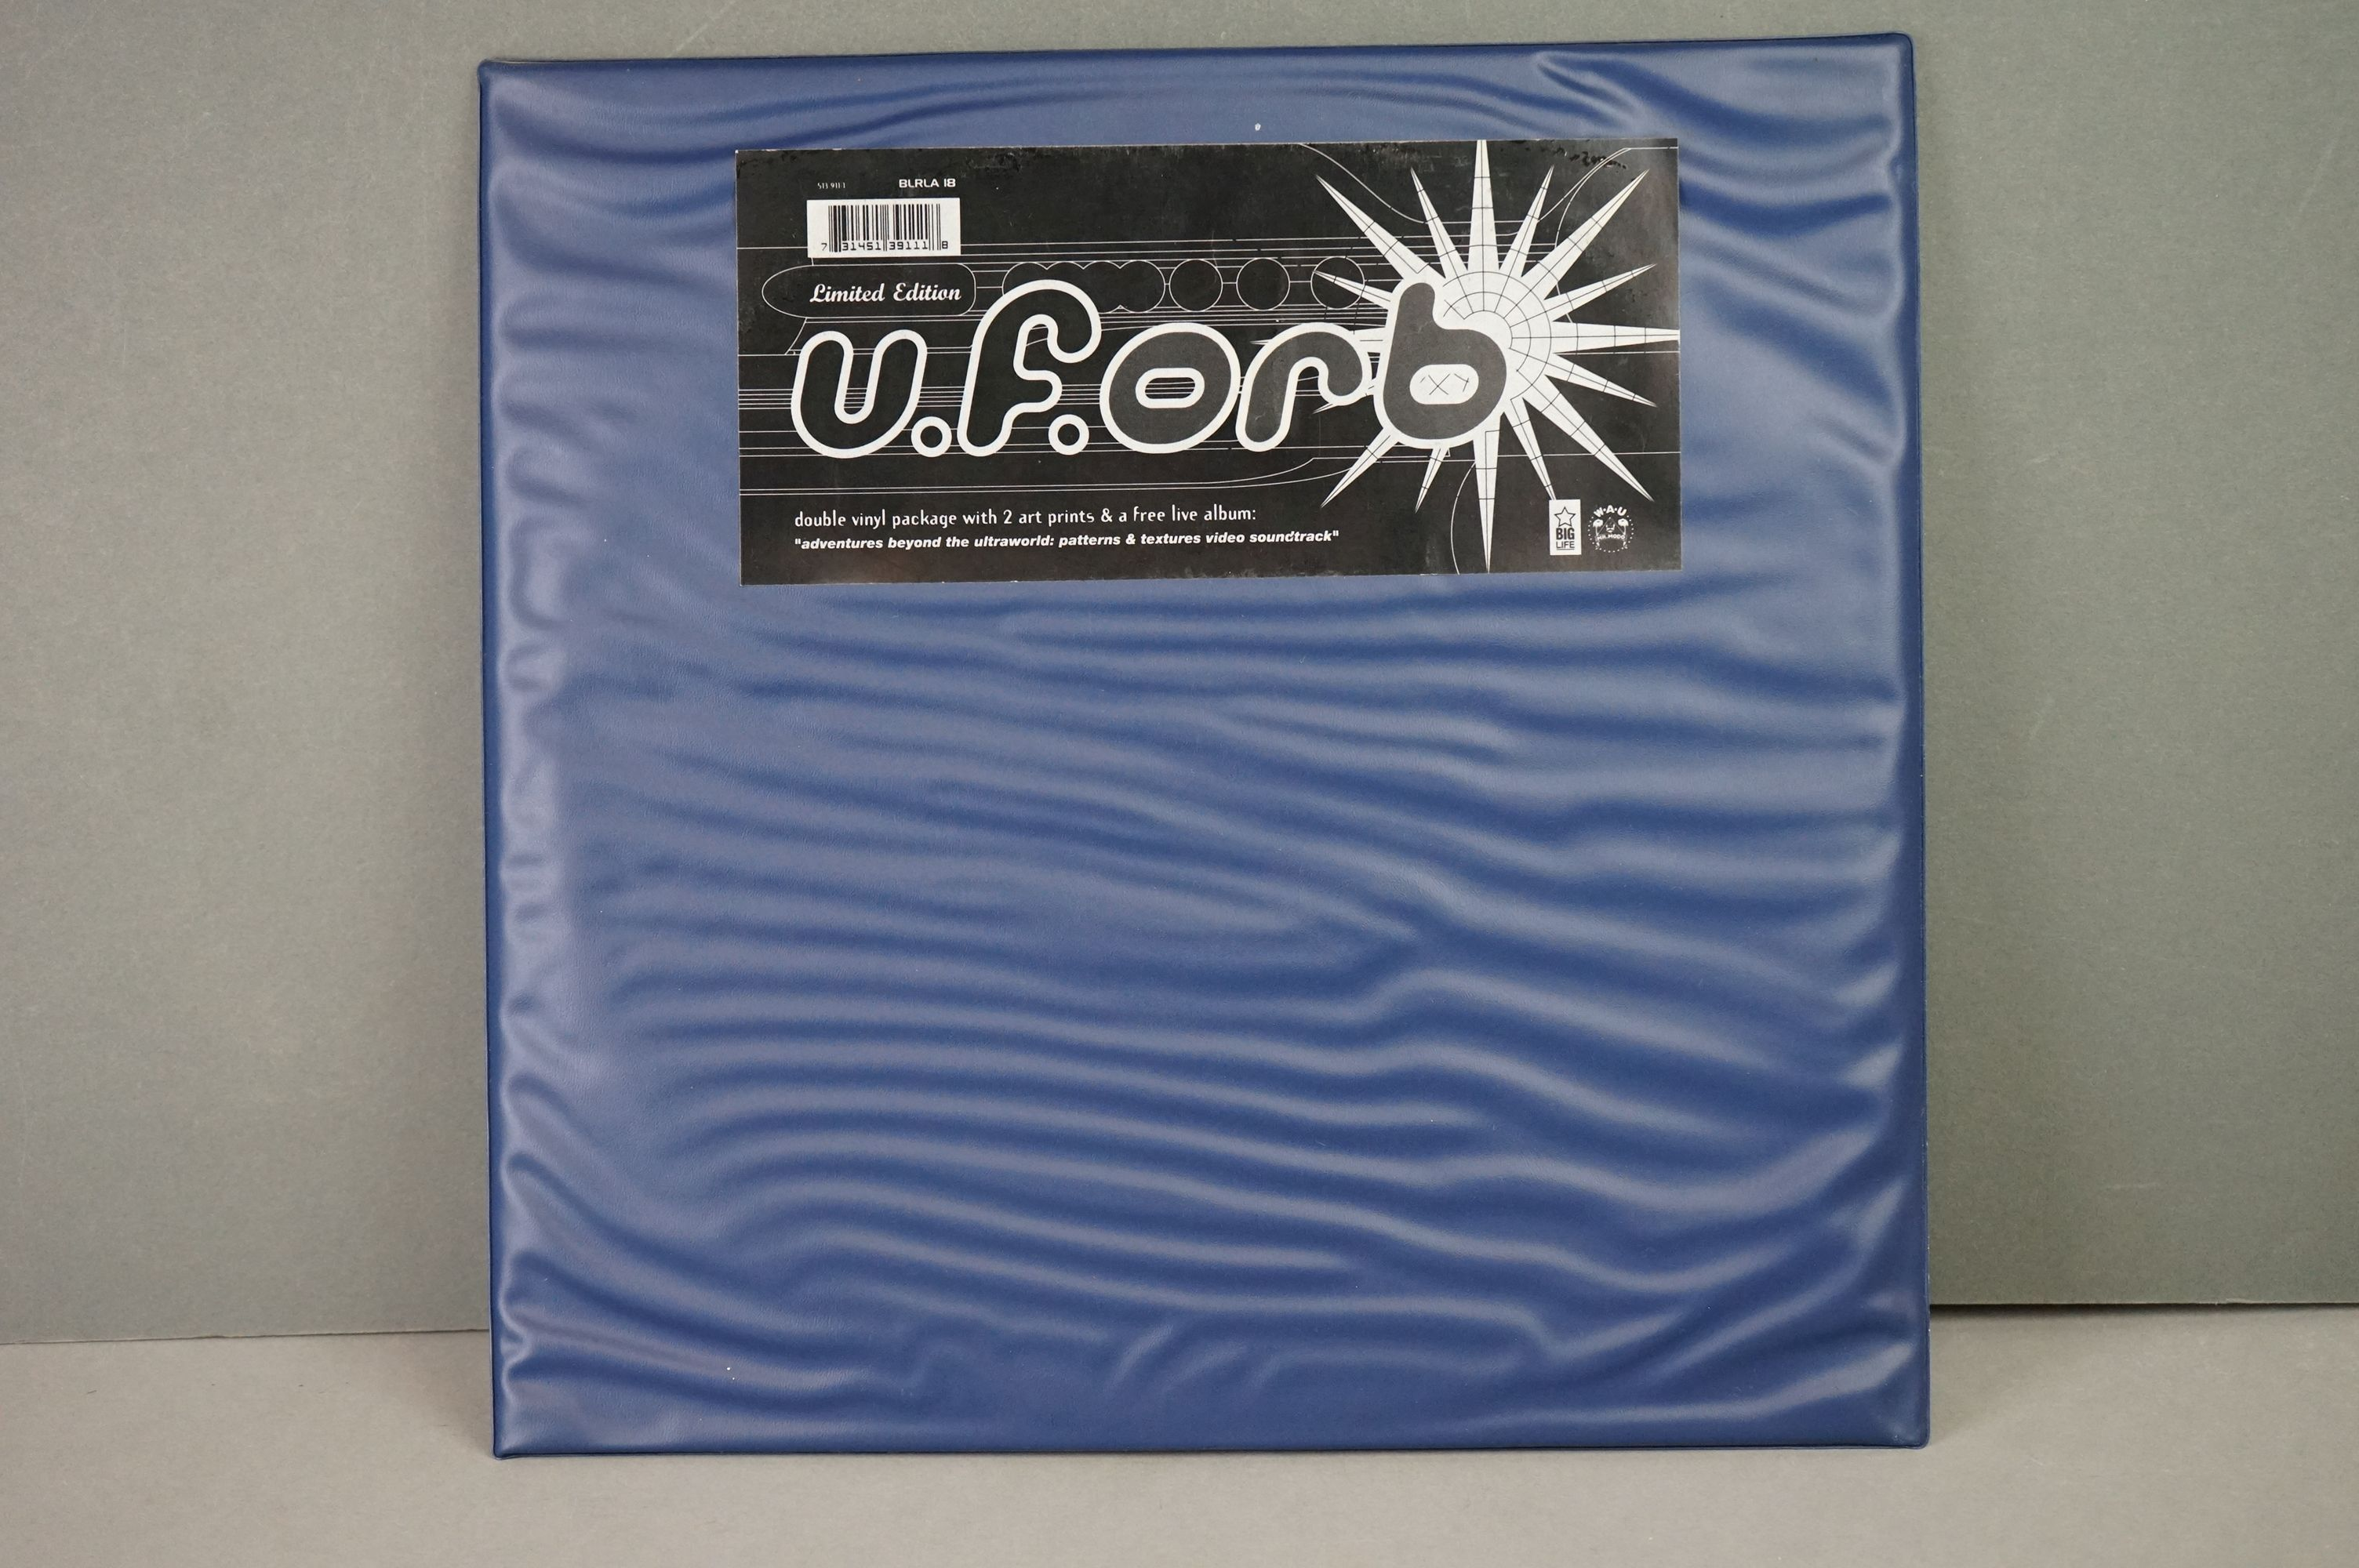 Vinyl - Orb UFORB on Big Life BLBLA18 Double vinyl package with 2 x art prints and free live